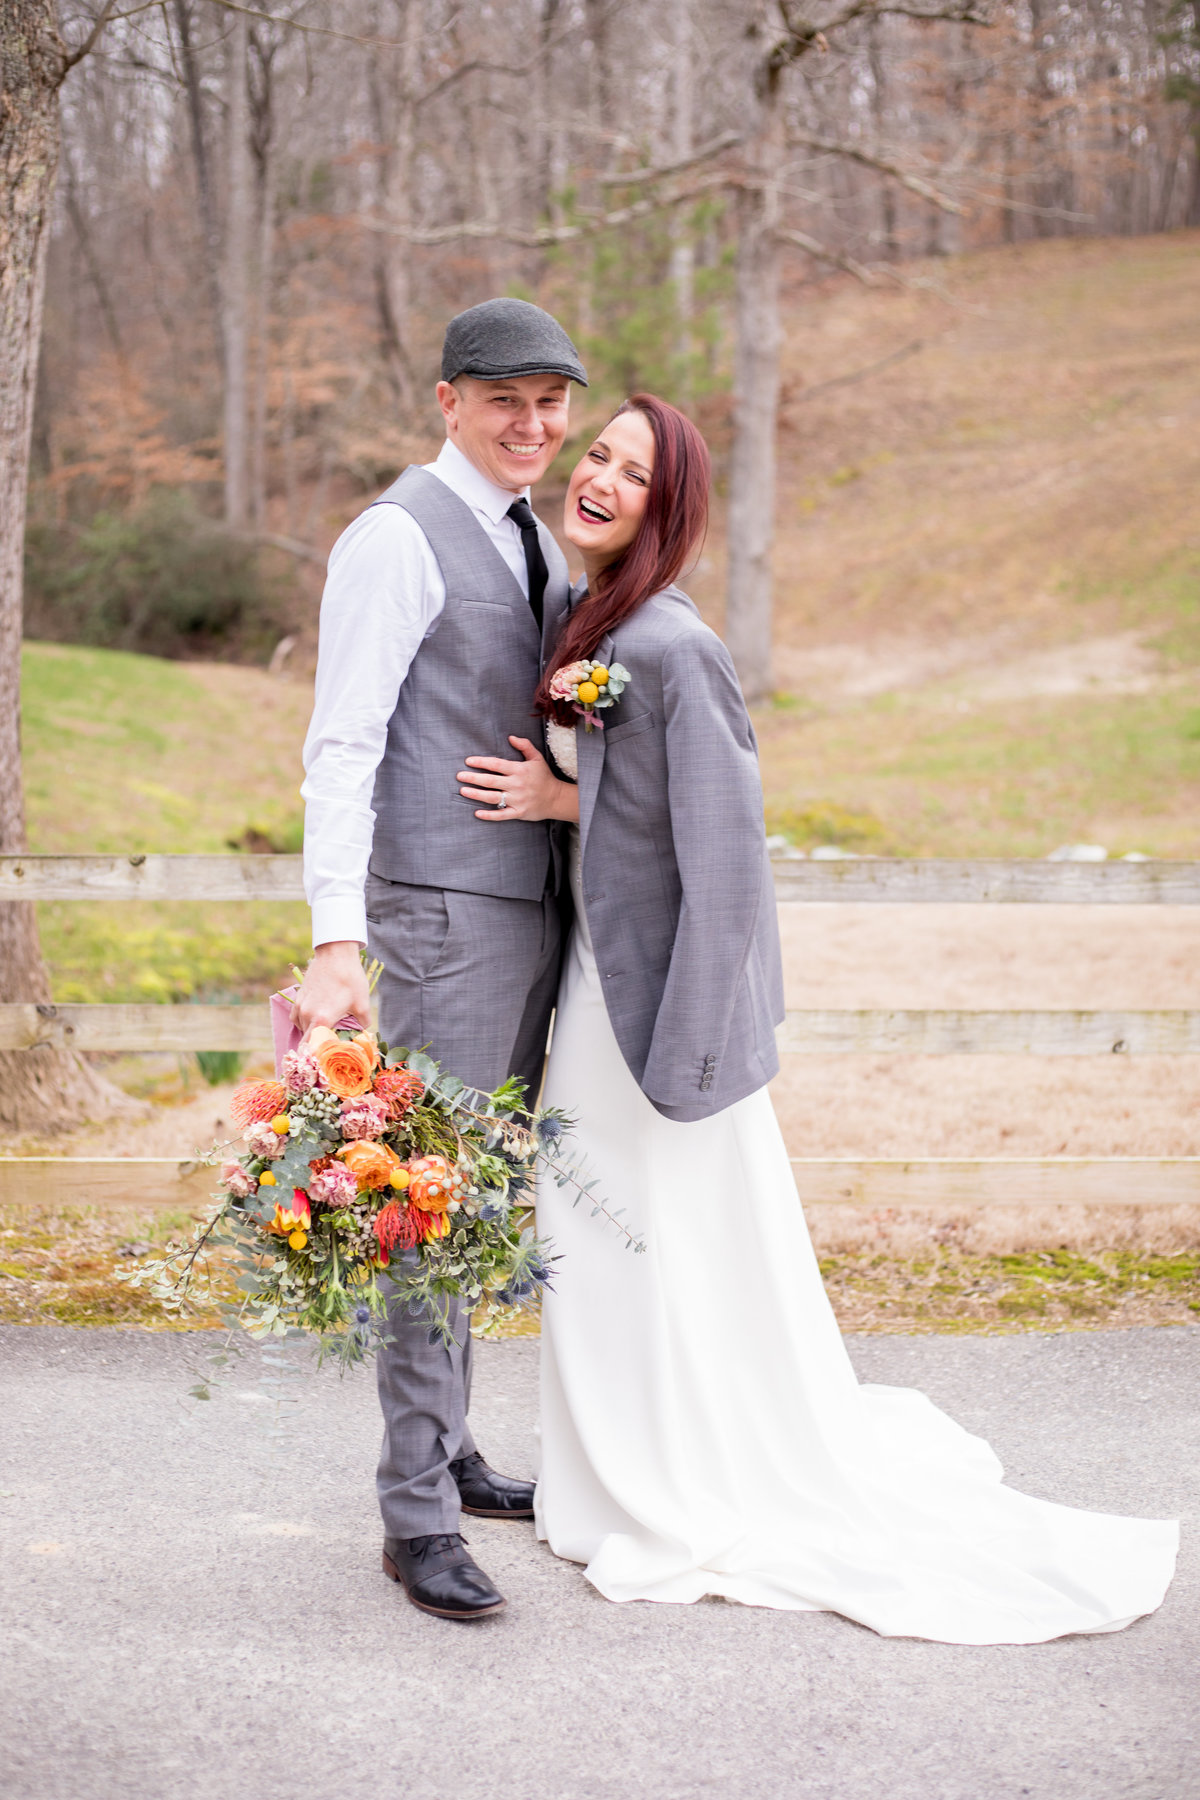 Atlanta wedding photographer Crystal Lily